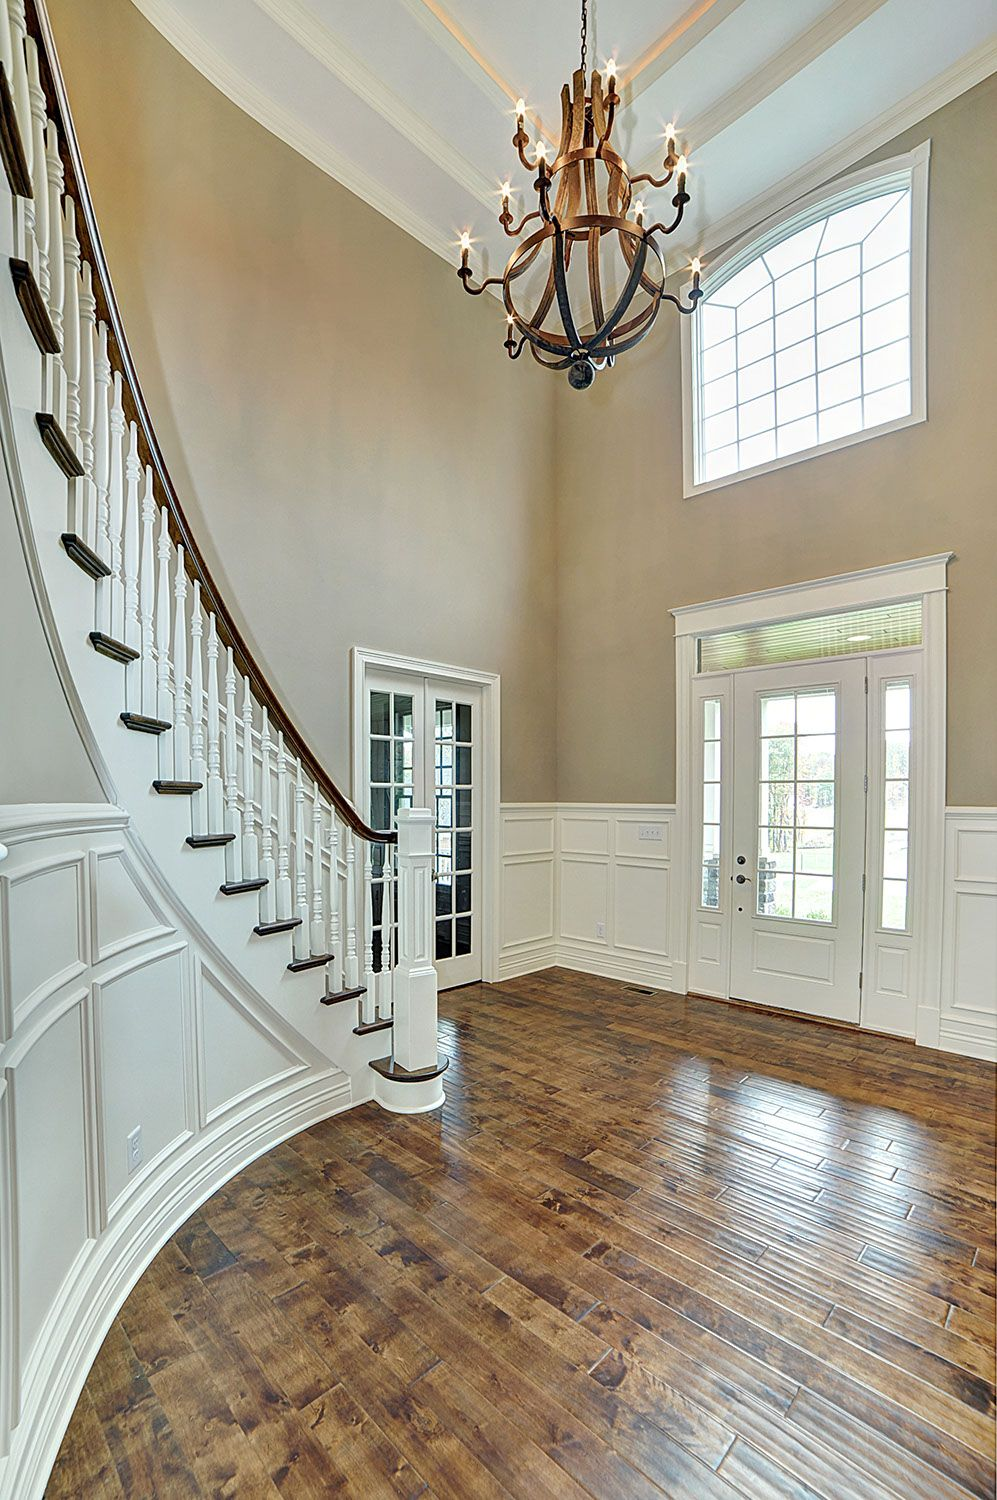 Story Foyer Pictures : Curved staircase in two story foyer with white wainscoting